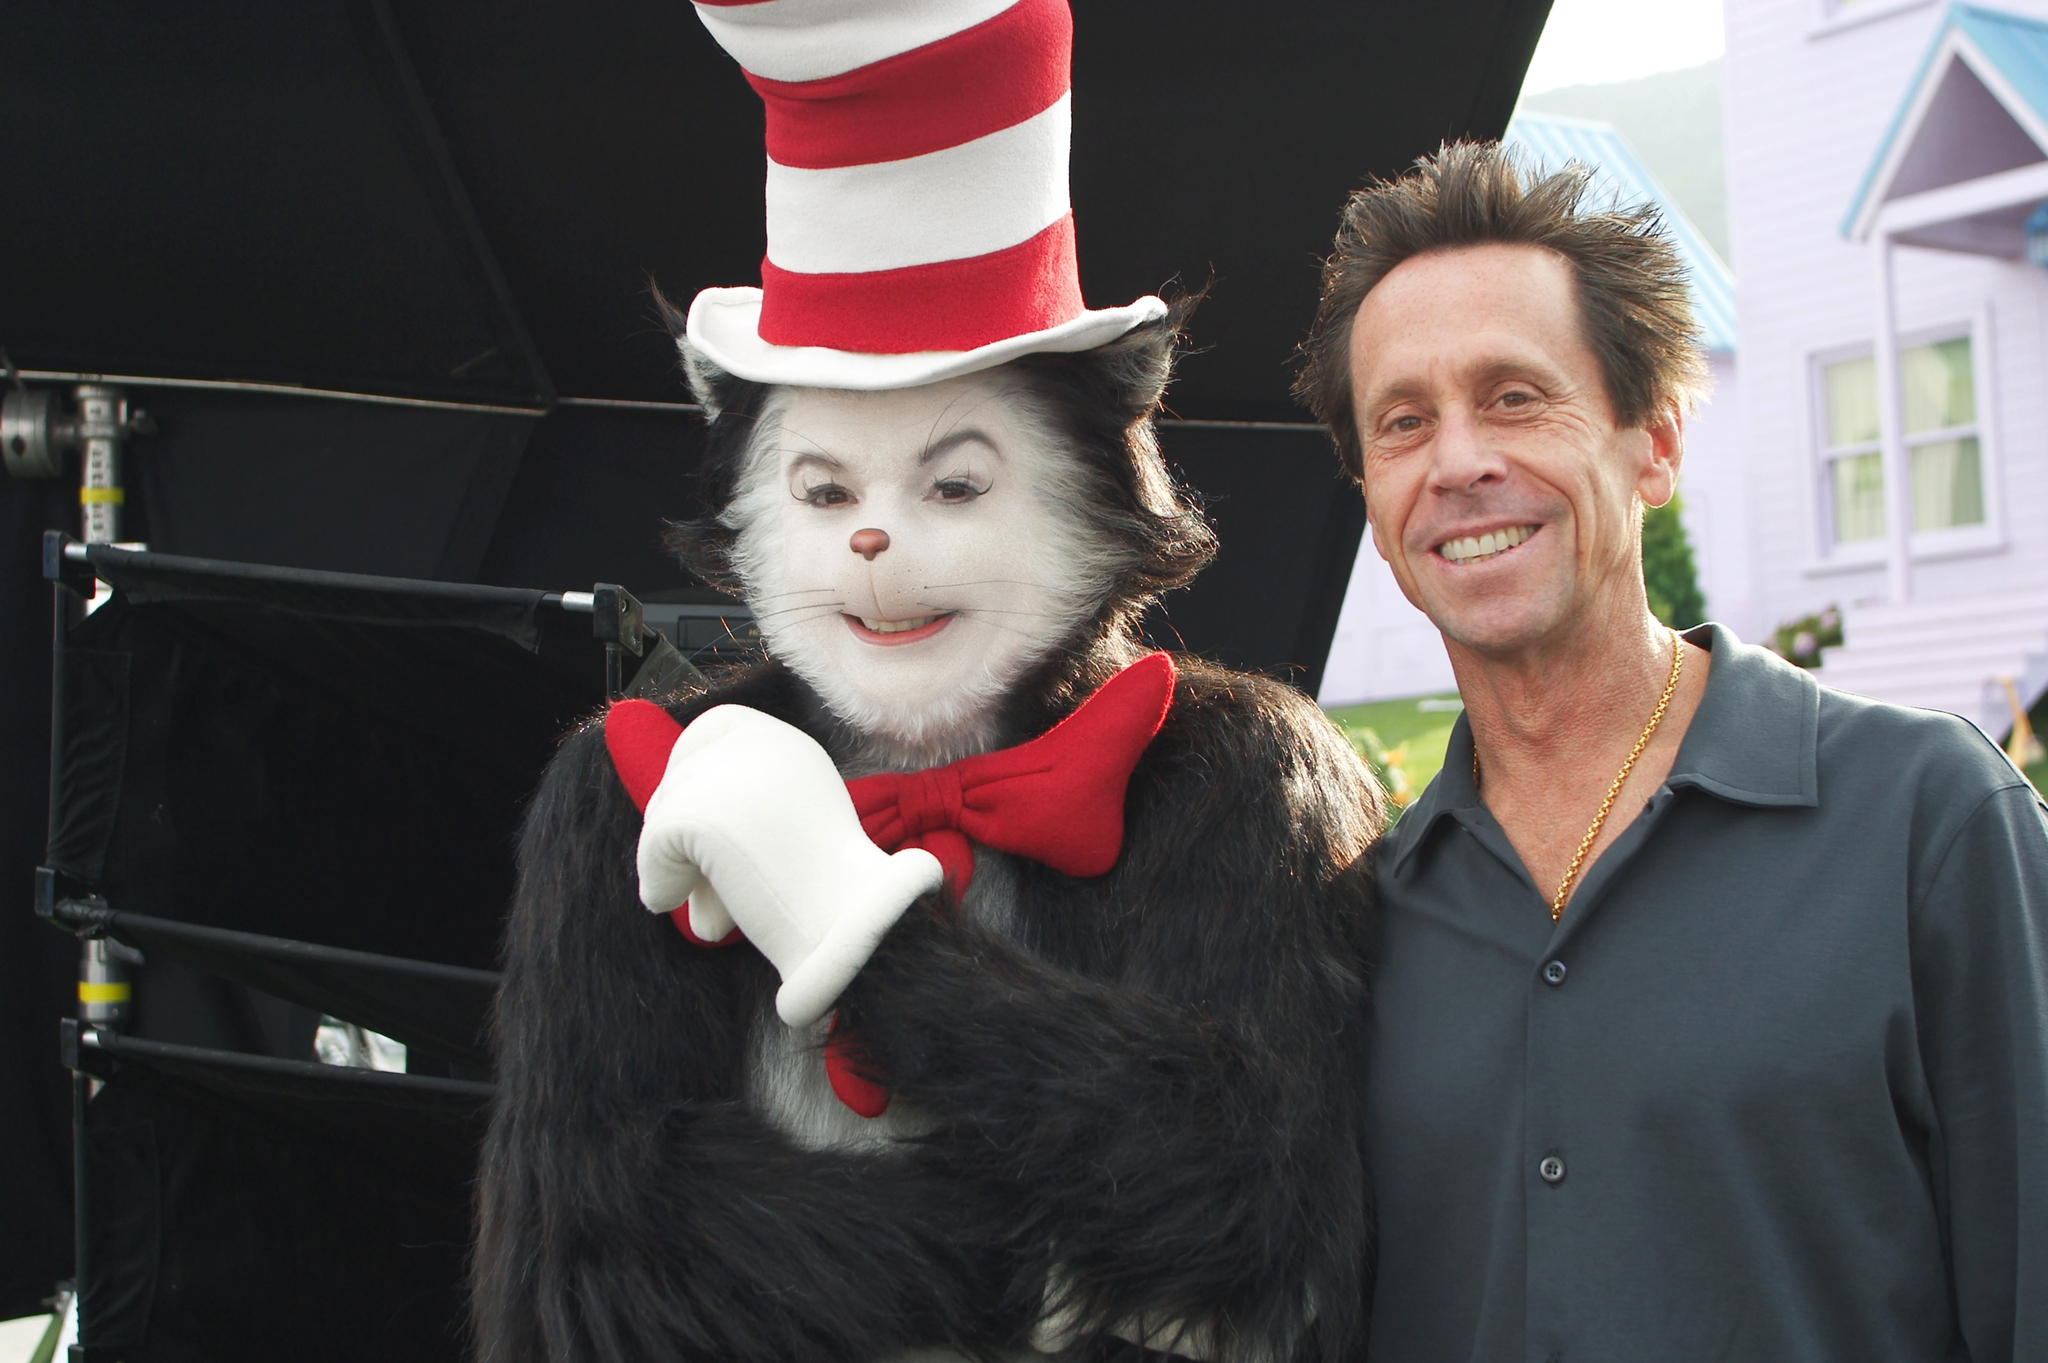 610c9a26 The Cat in the Hat (2003) - Photo Gallery - IMDb